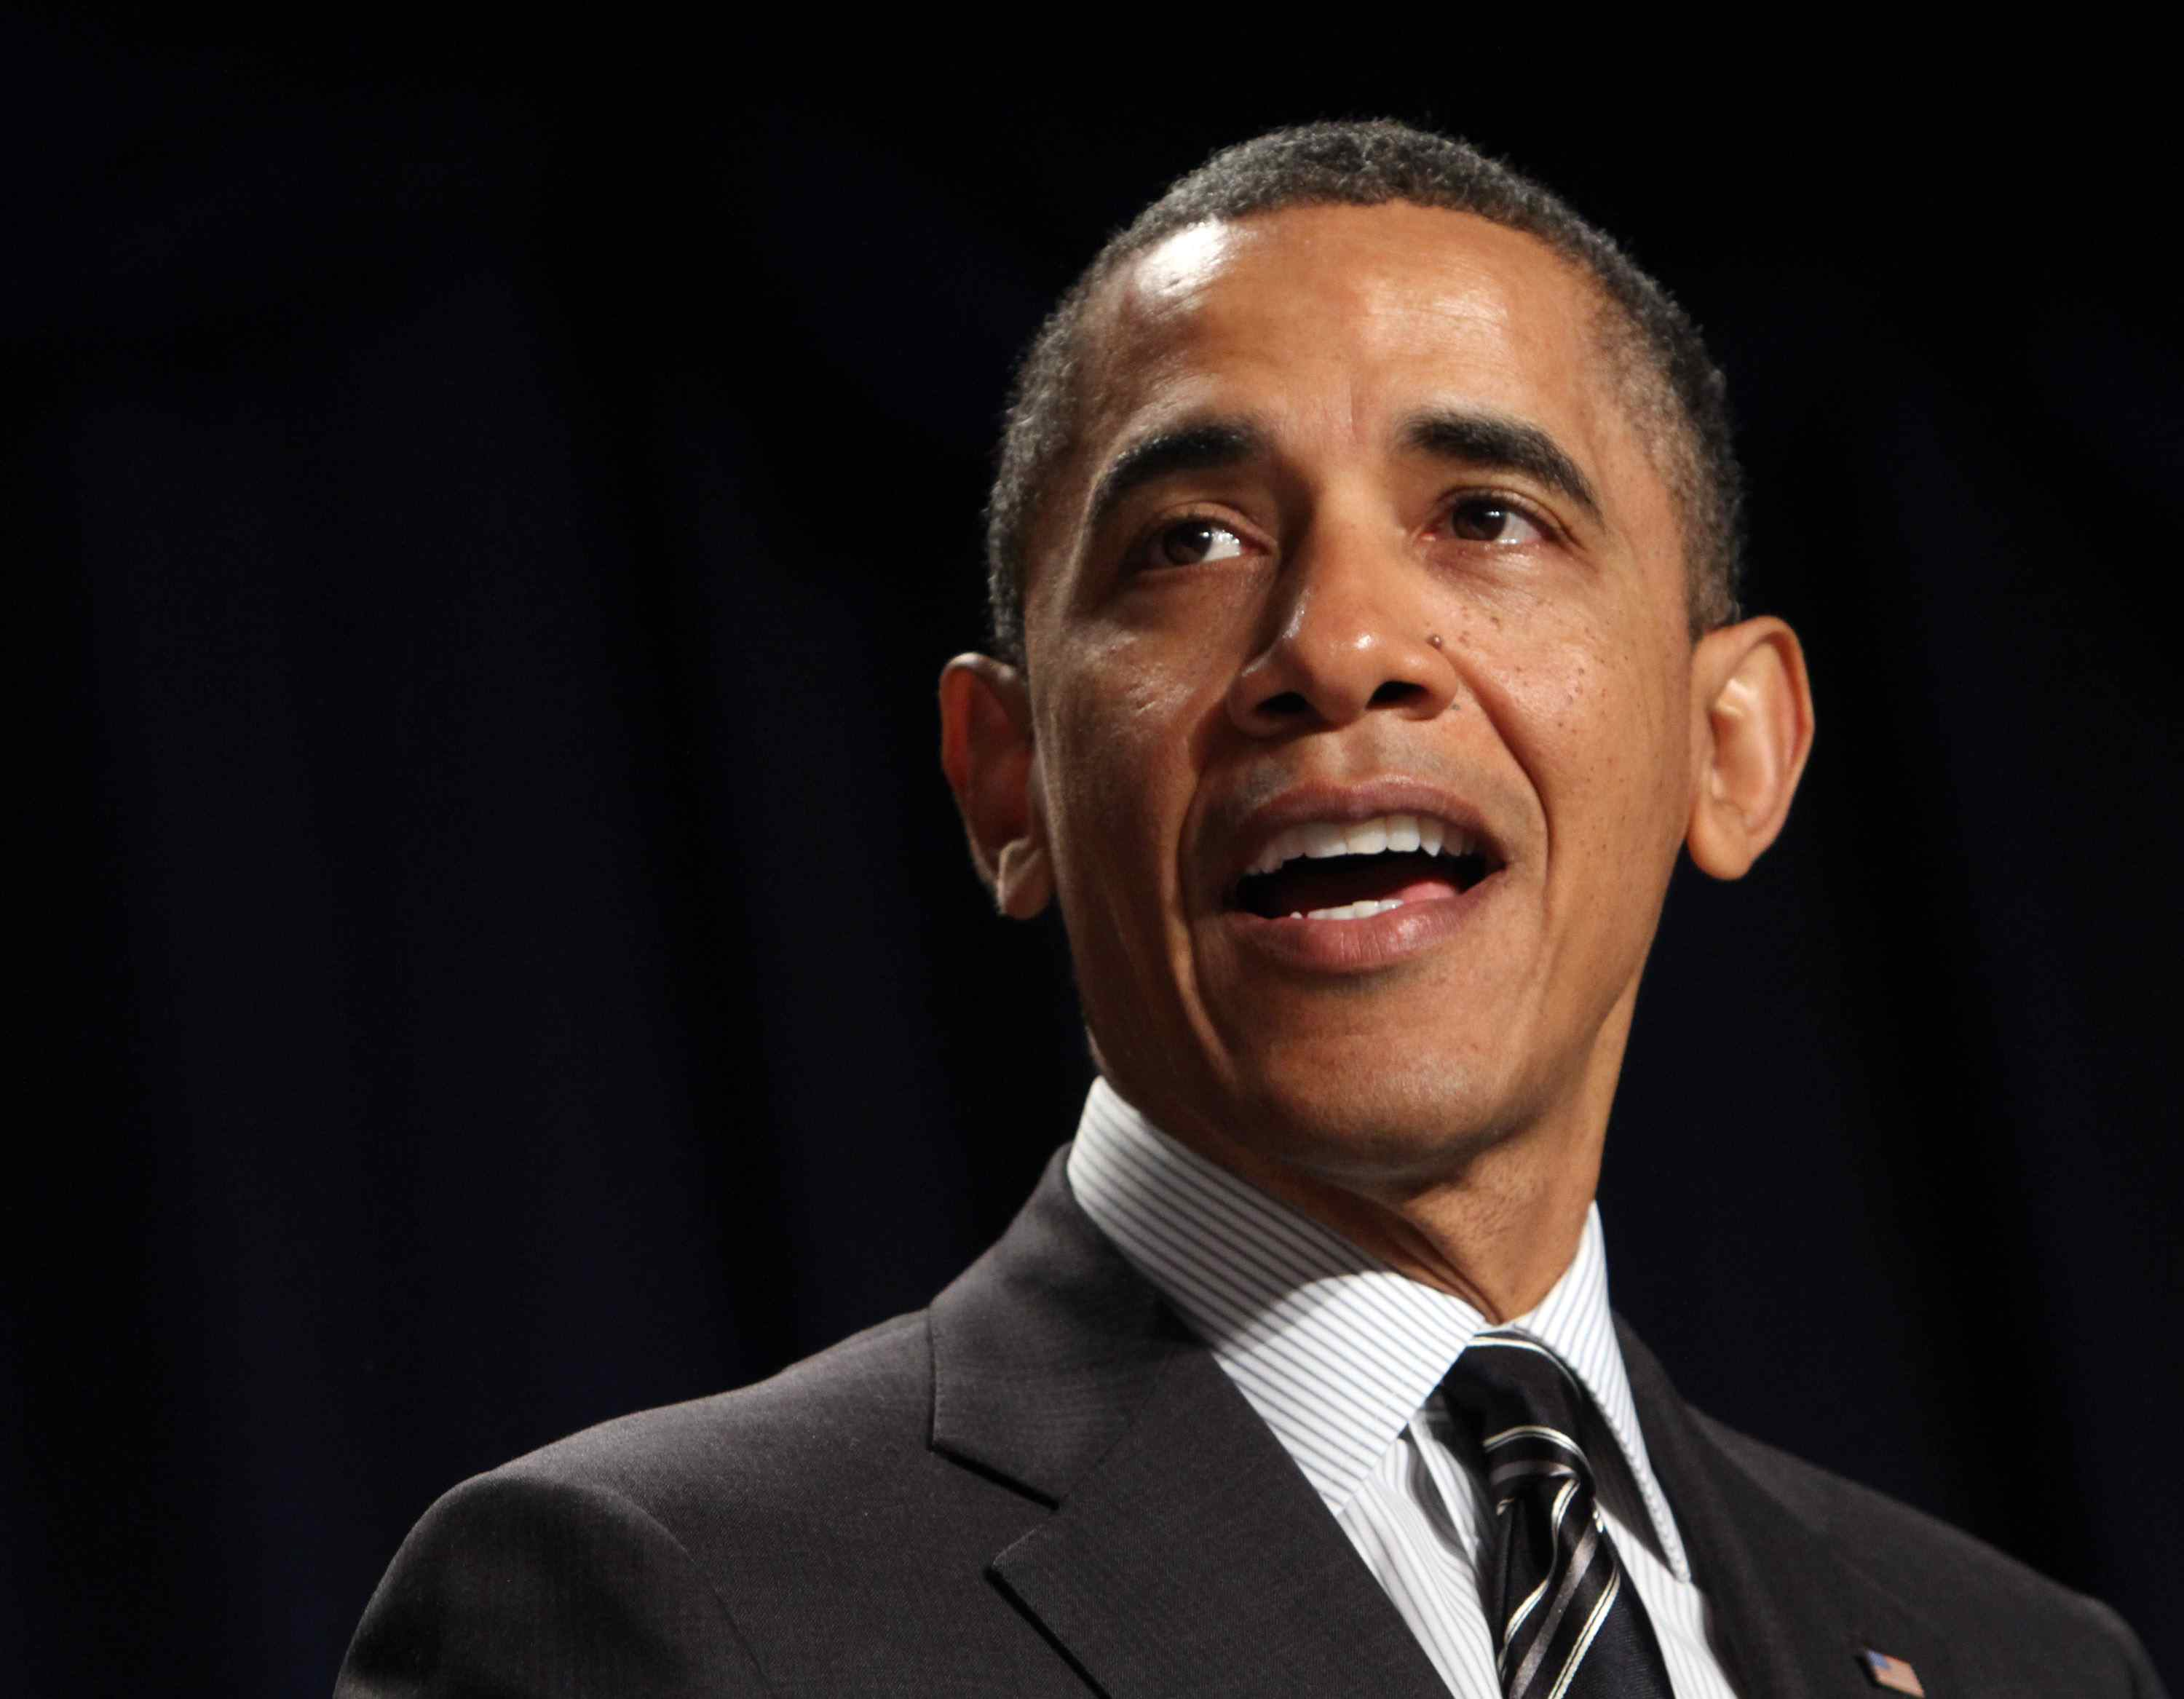 President Barack Obama is among the youngest presidents in U.S. history.